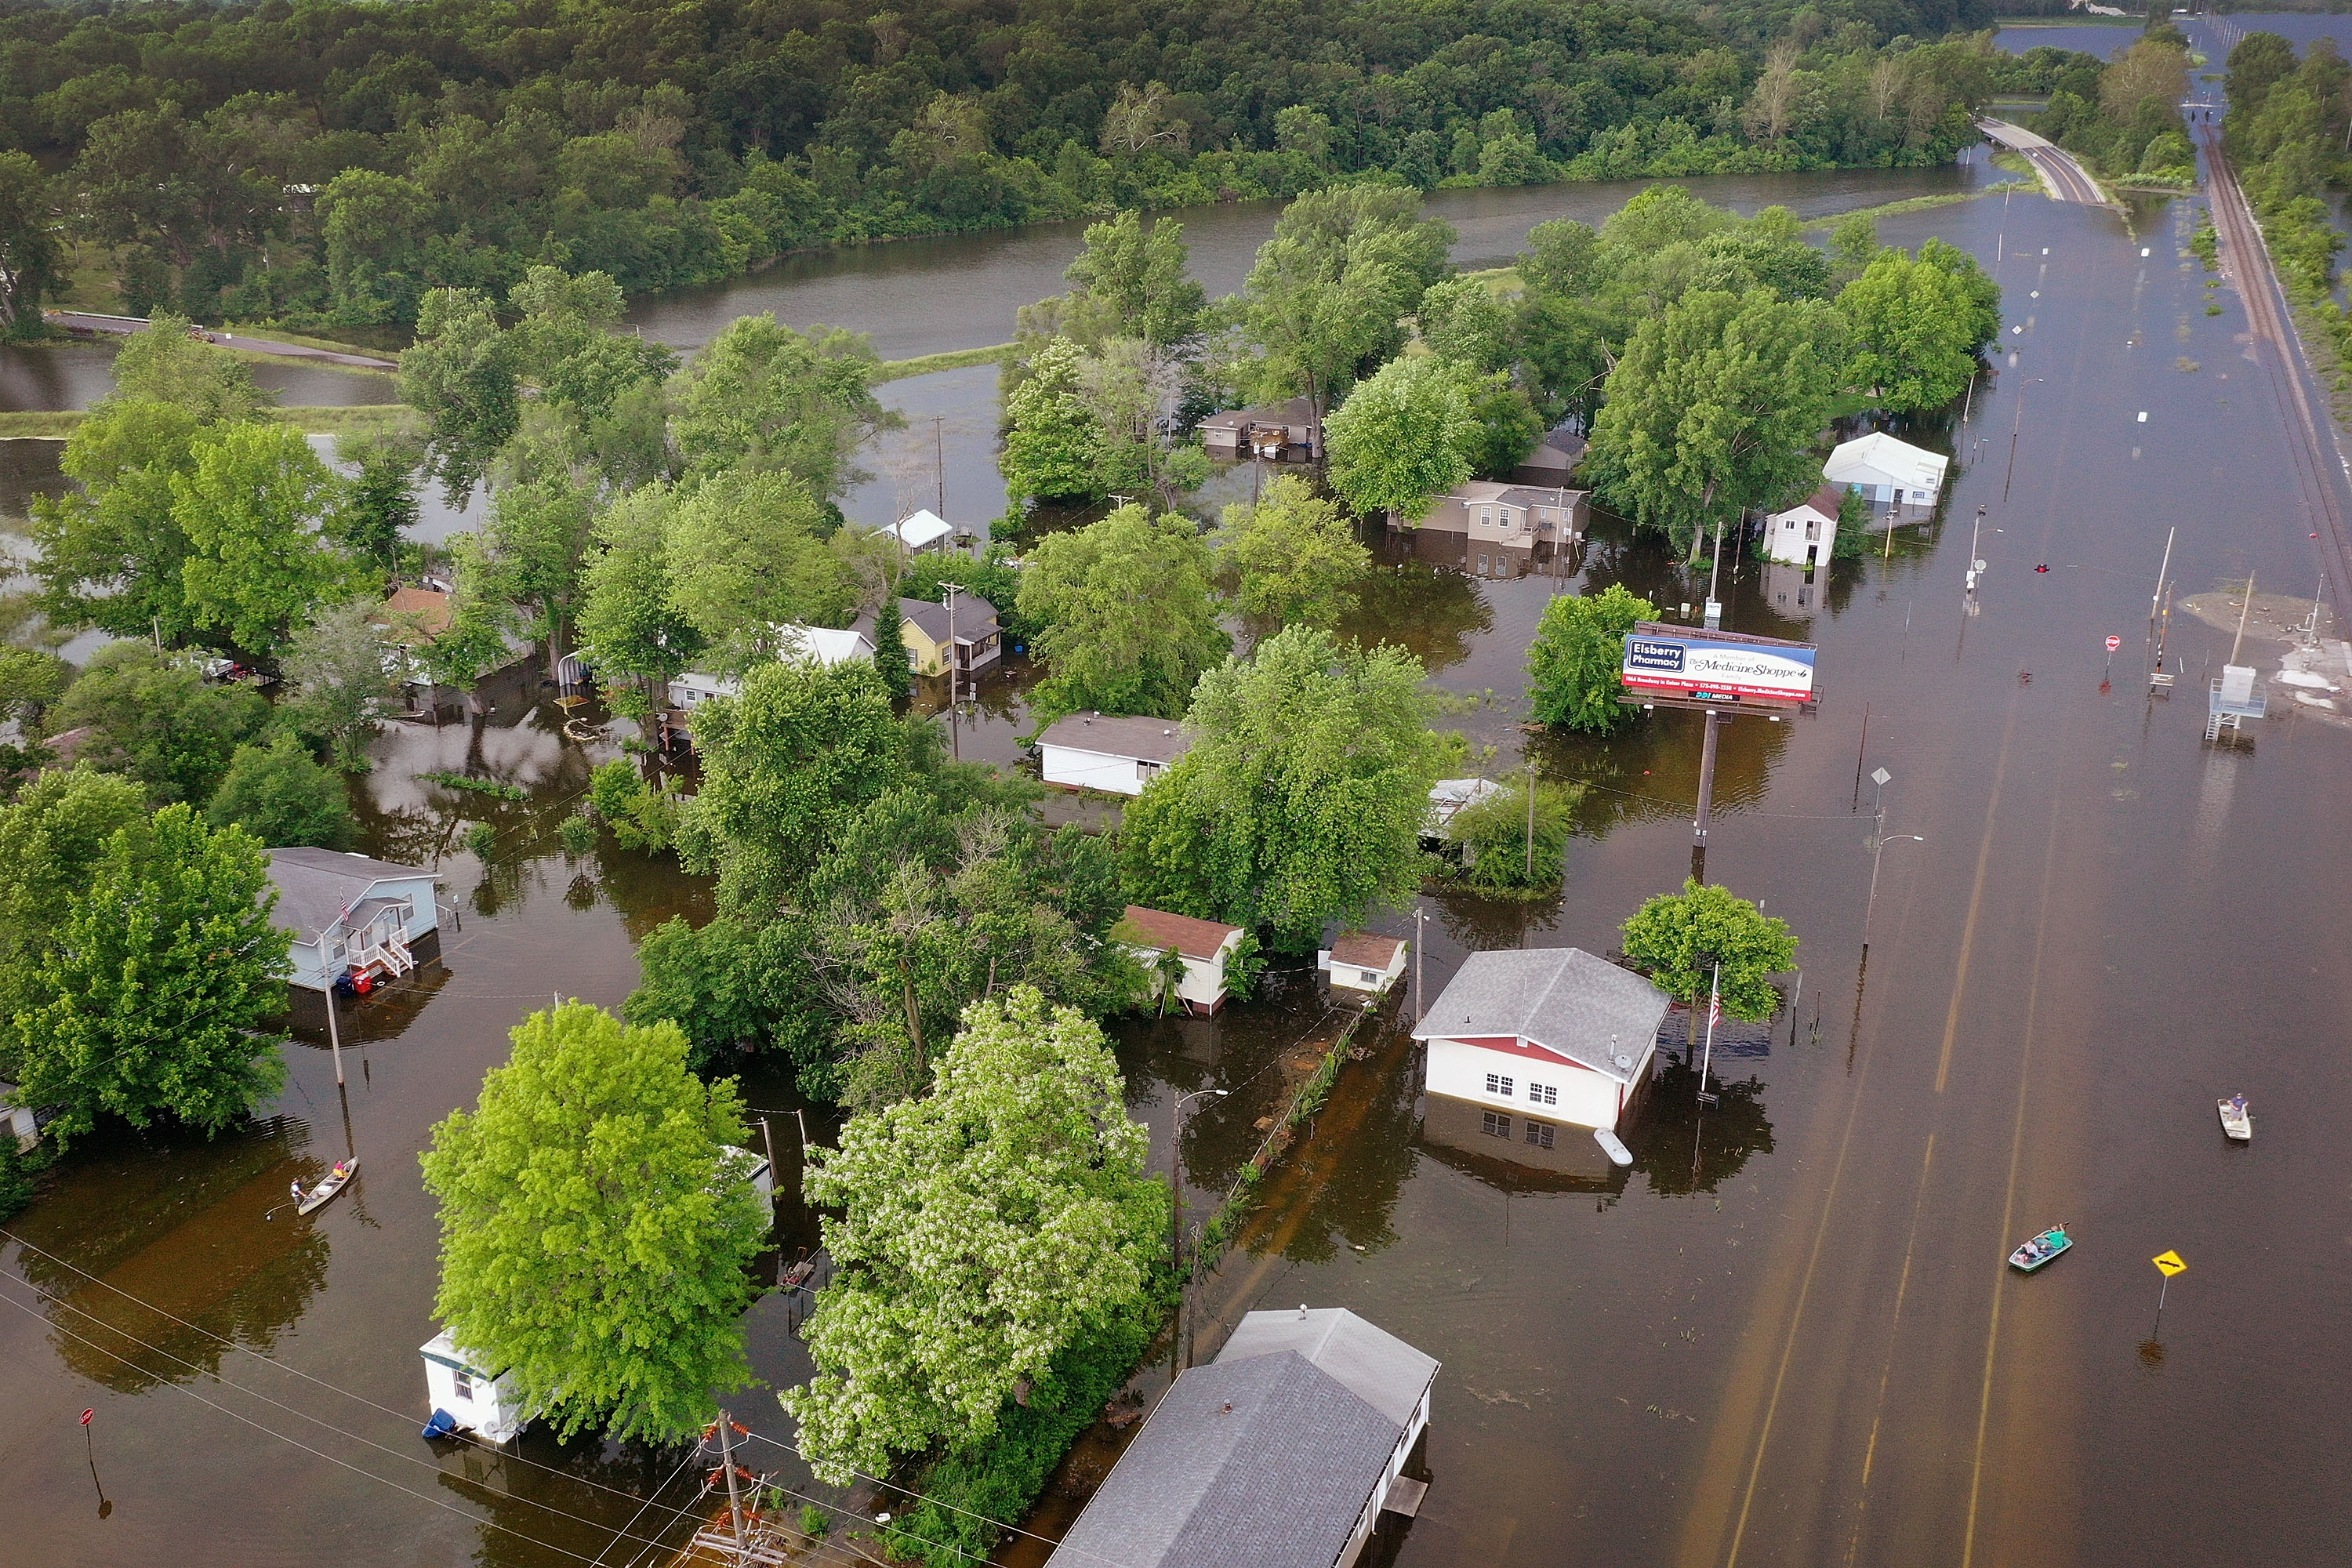 The Midwest and Southeast can't catch a break from floods. More are on the way.